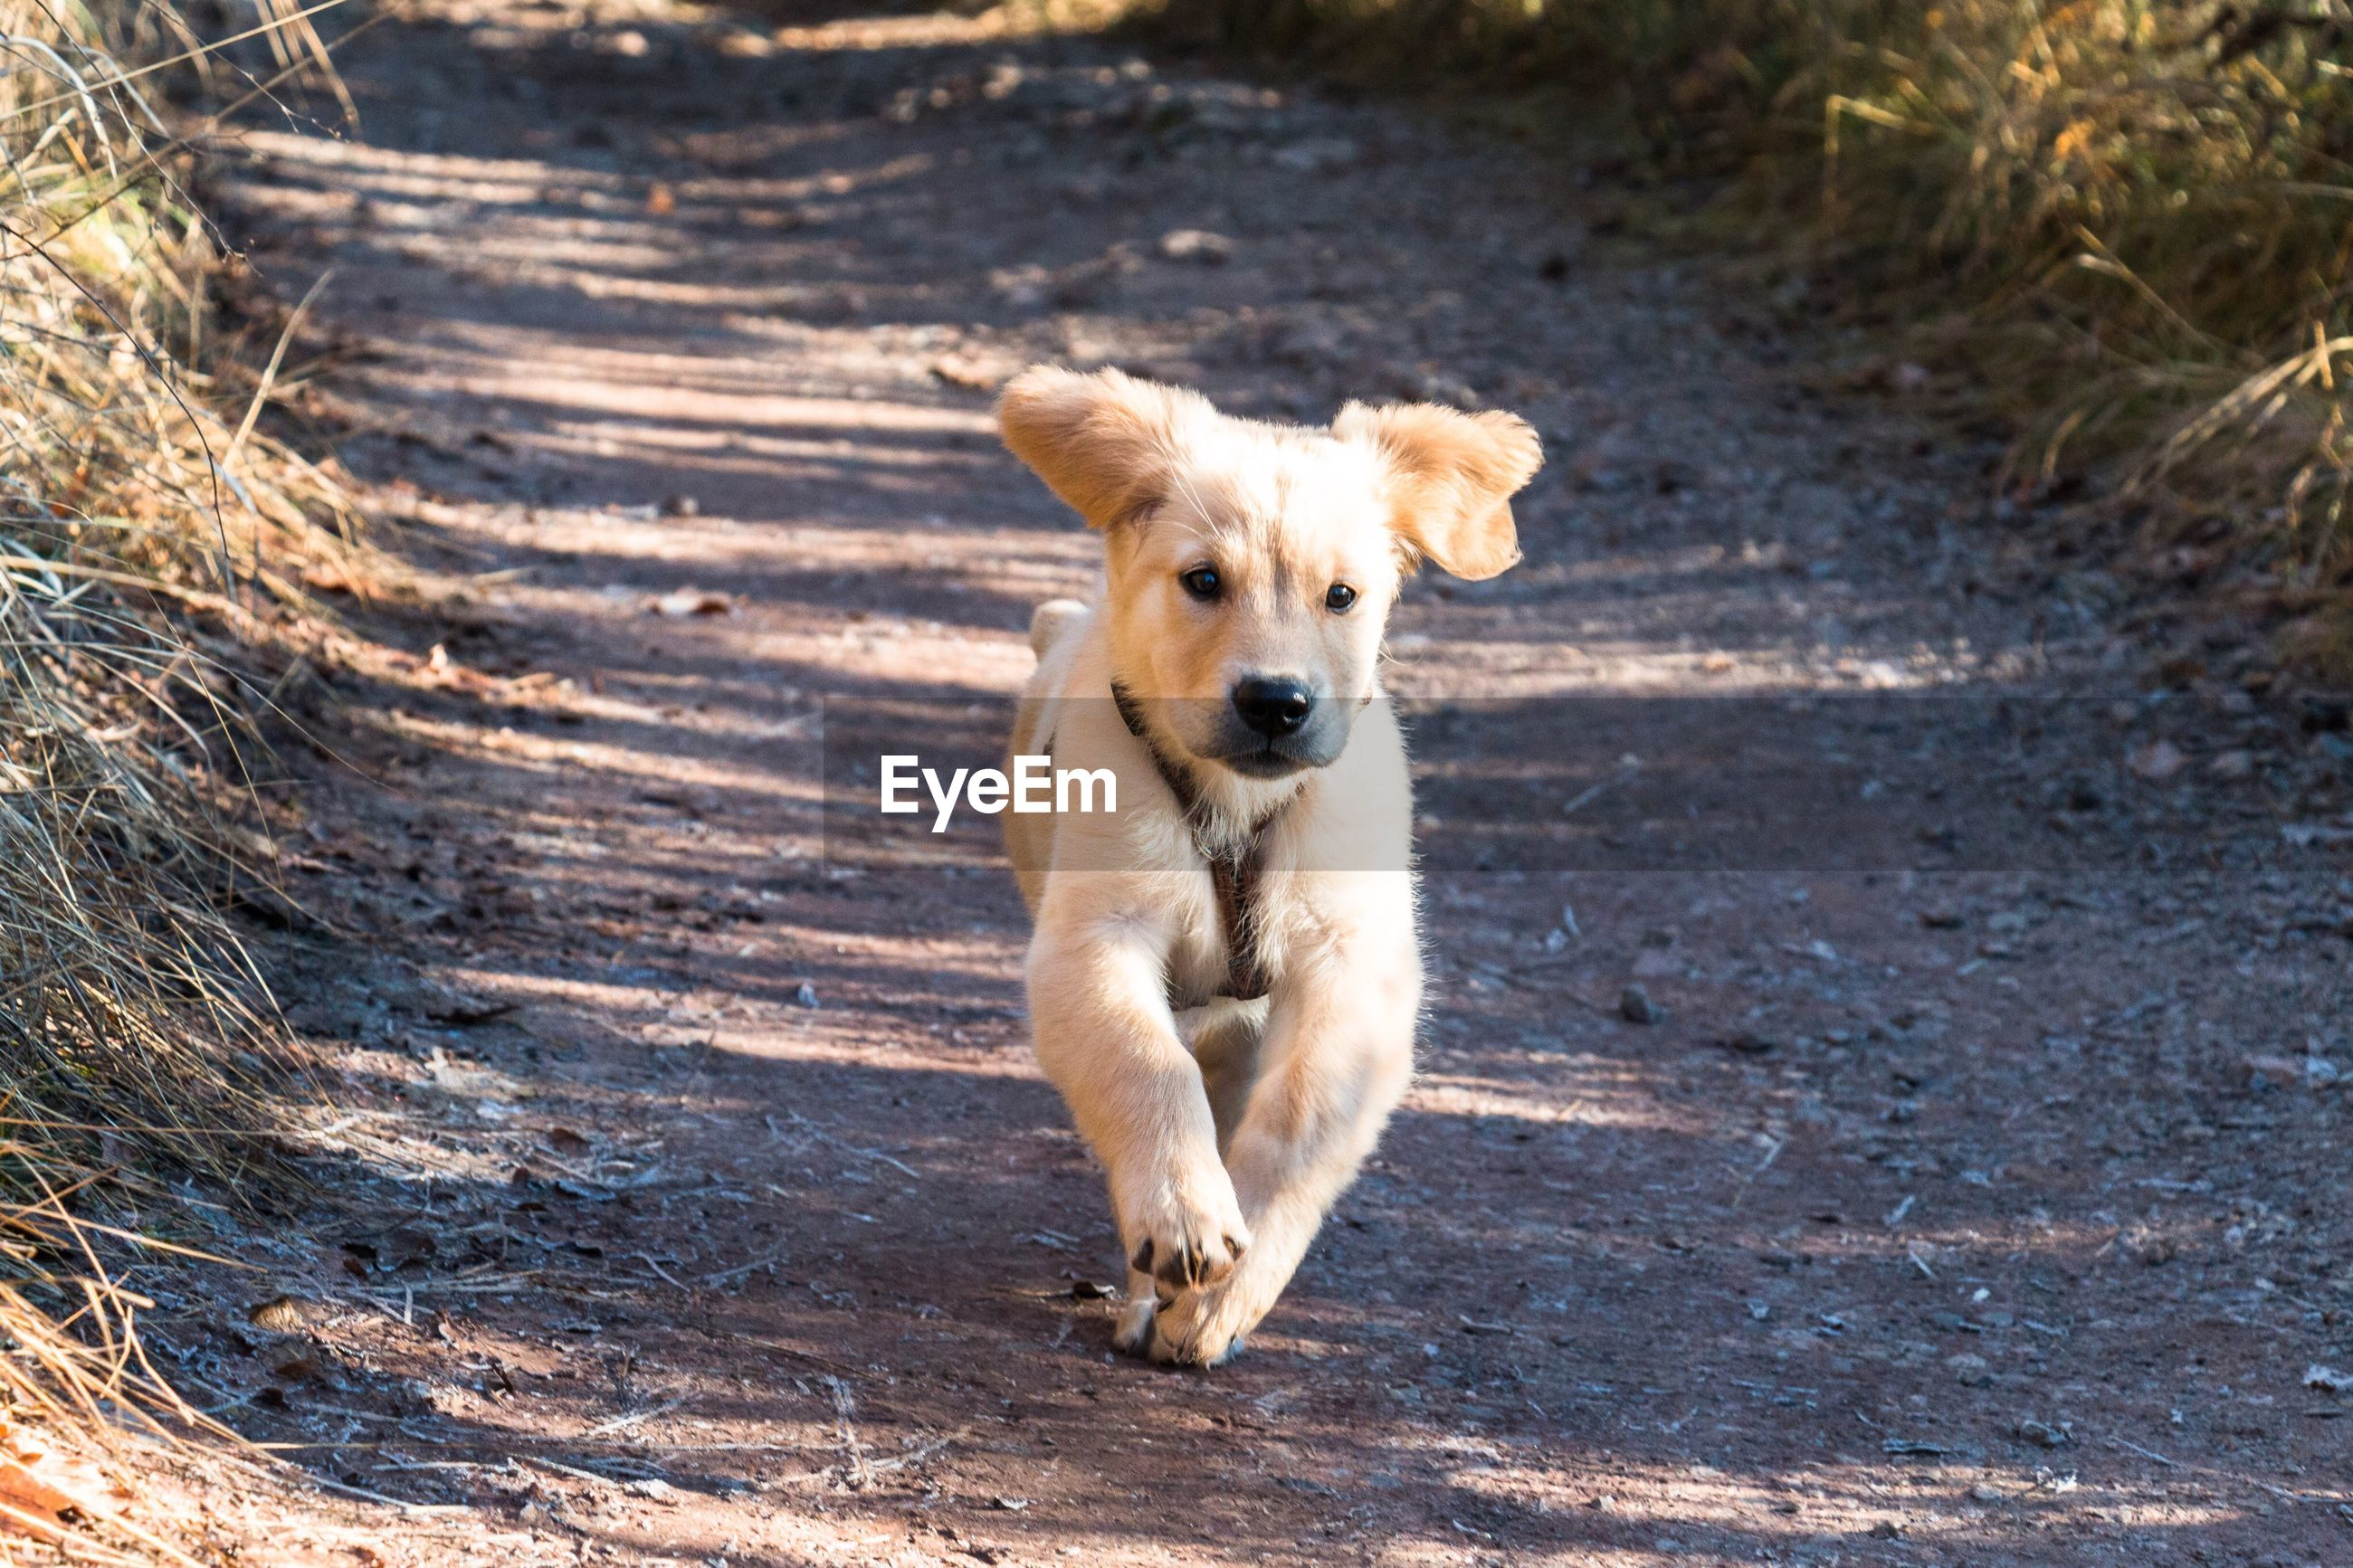 dog, pets, one animal, running, animal themes, domestic animals, outdoors, motion, day, walking, looking at camera, no people, full length, beach, mammal, portrait, nature